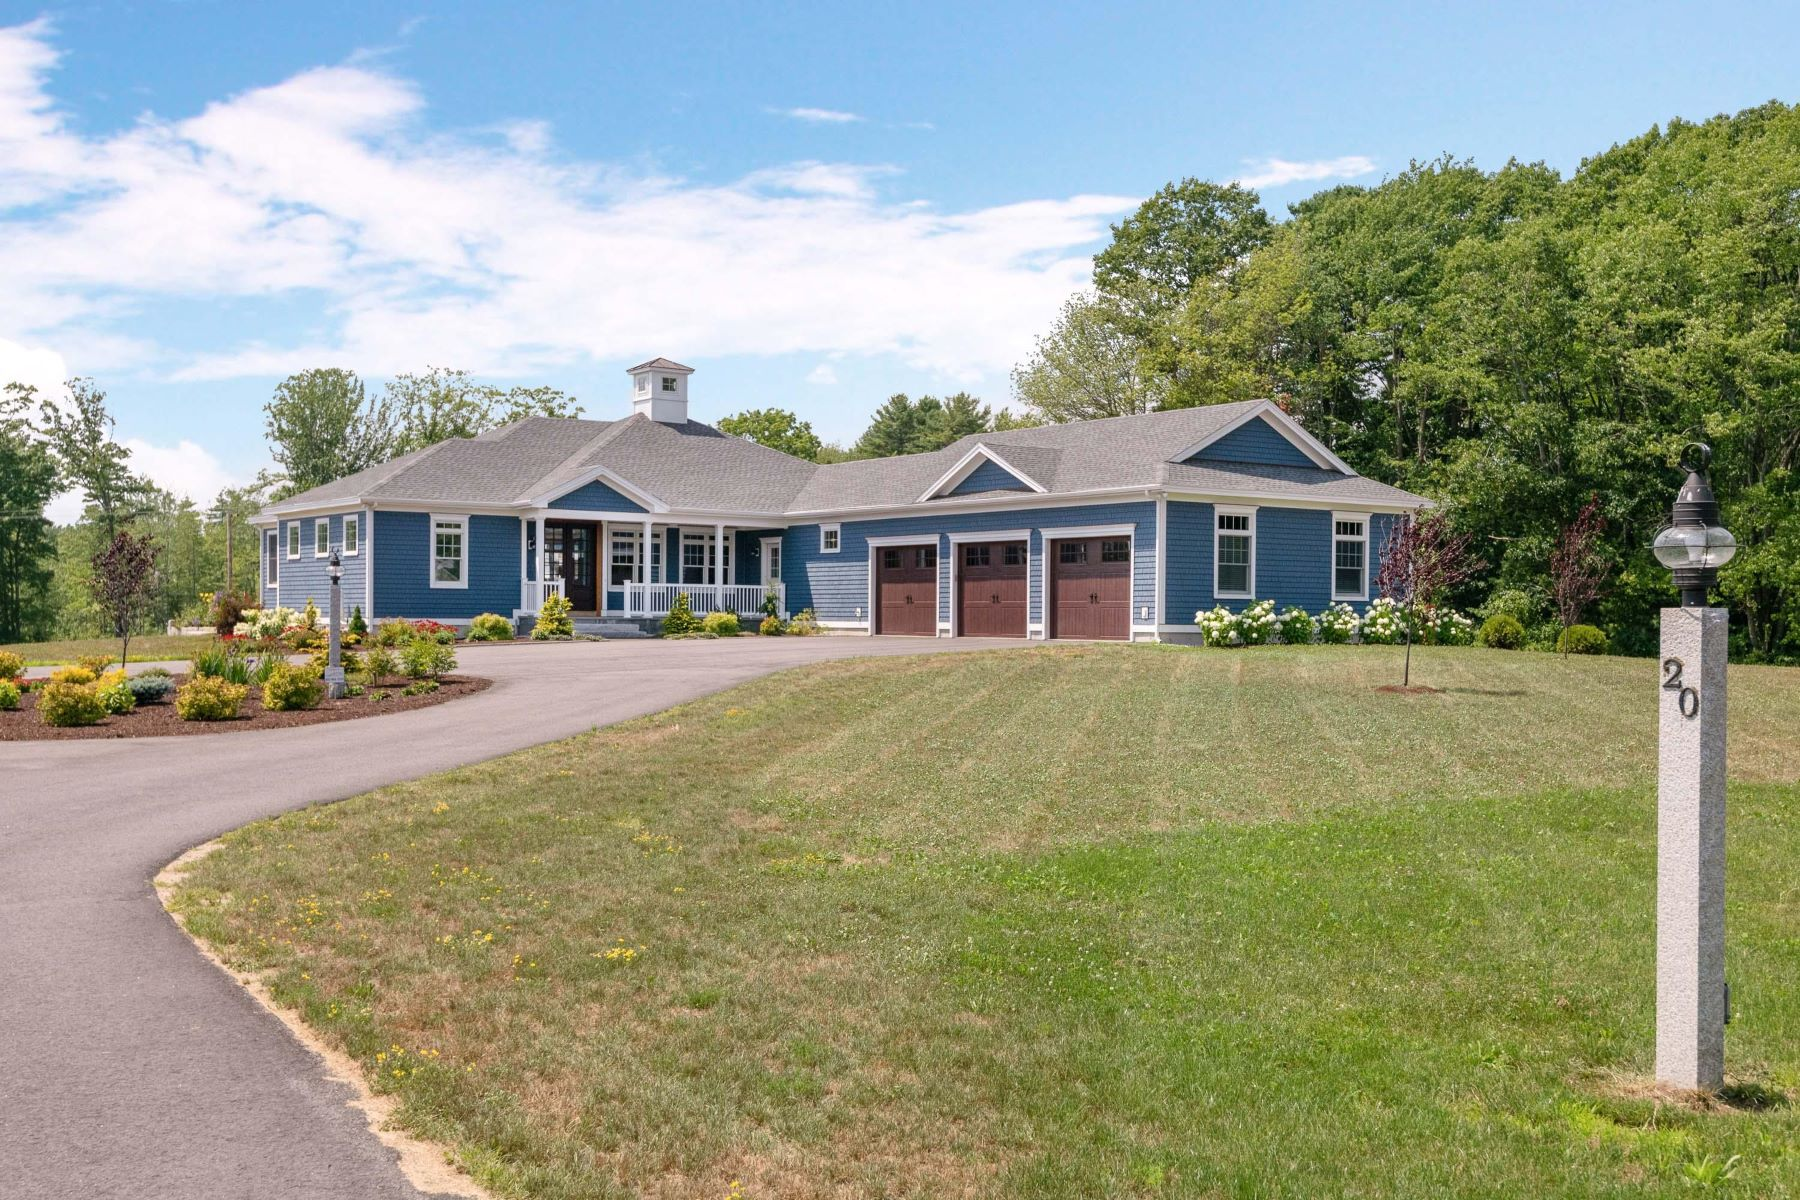 Single Family Homes for Active at 20 Mt Kineo Road Kennebunkport, Maine 04046 United States